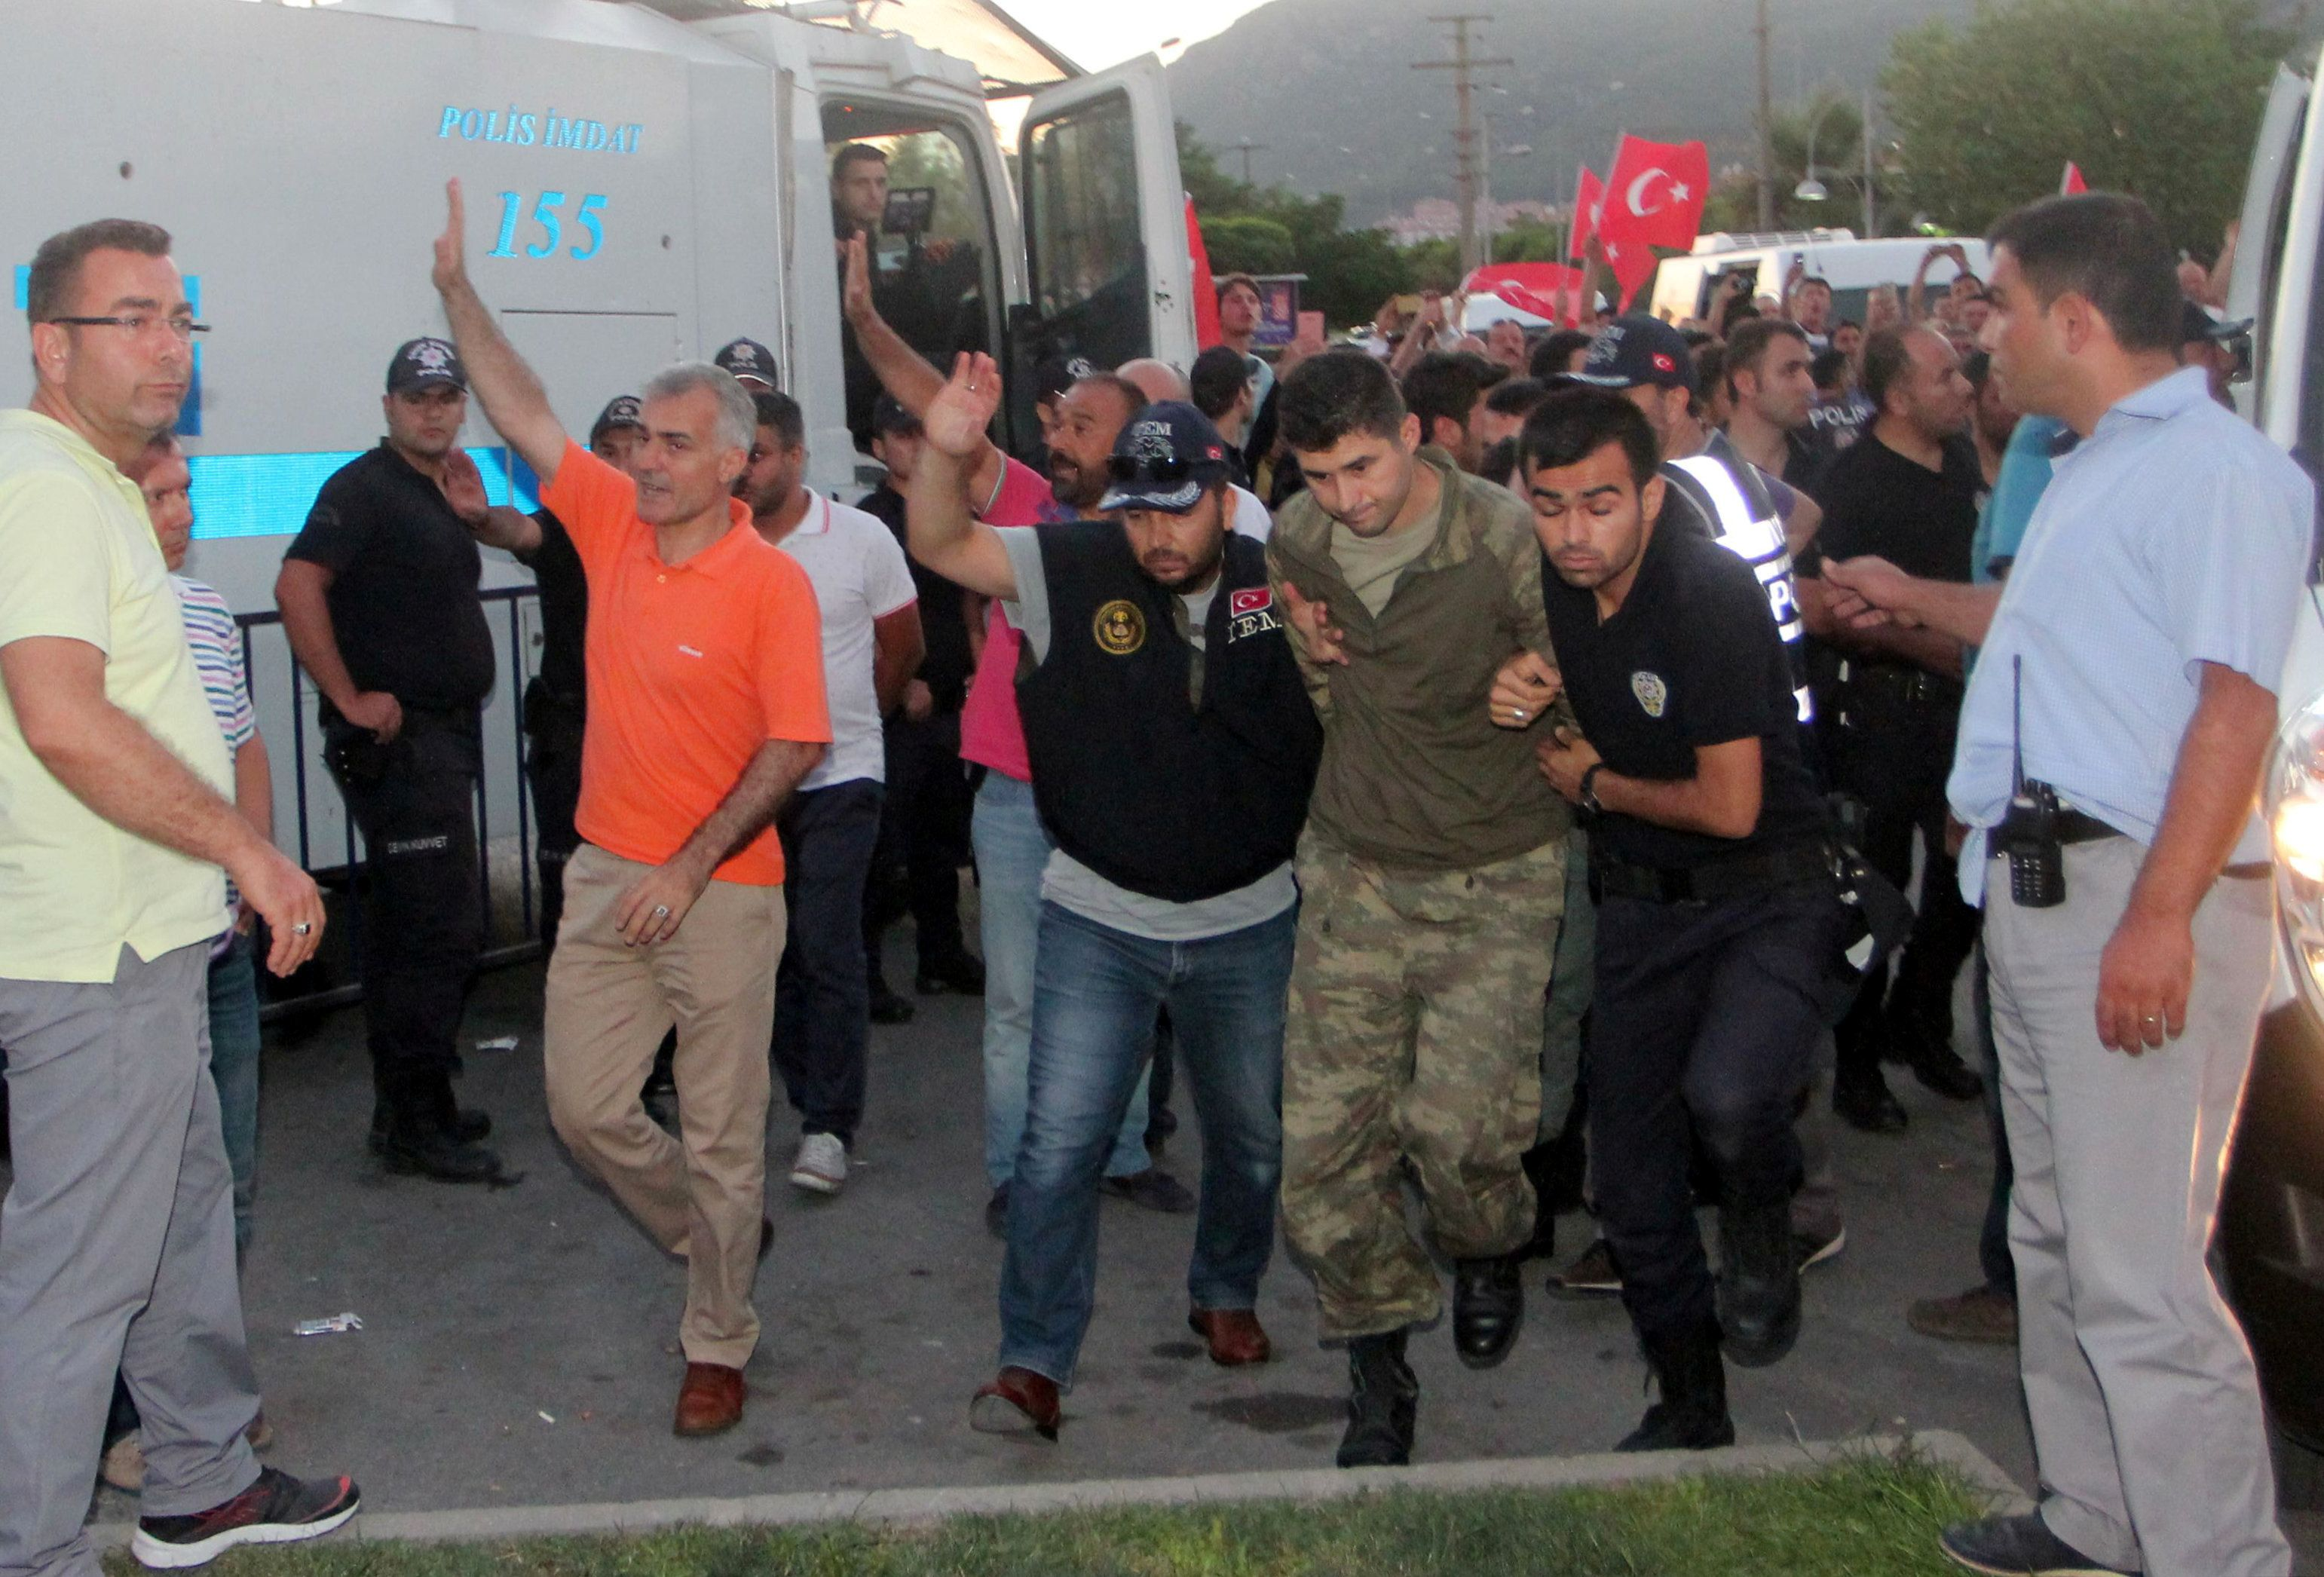 Soldiers suspected of being involved in the coup attempt are escorted by policemen as they arrive at a courthouse in the resort town of Marmaris, Turkey, July 17, 2016. REUTERS/Kenan Gurbuz